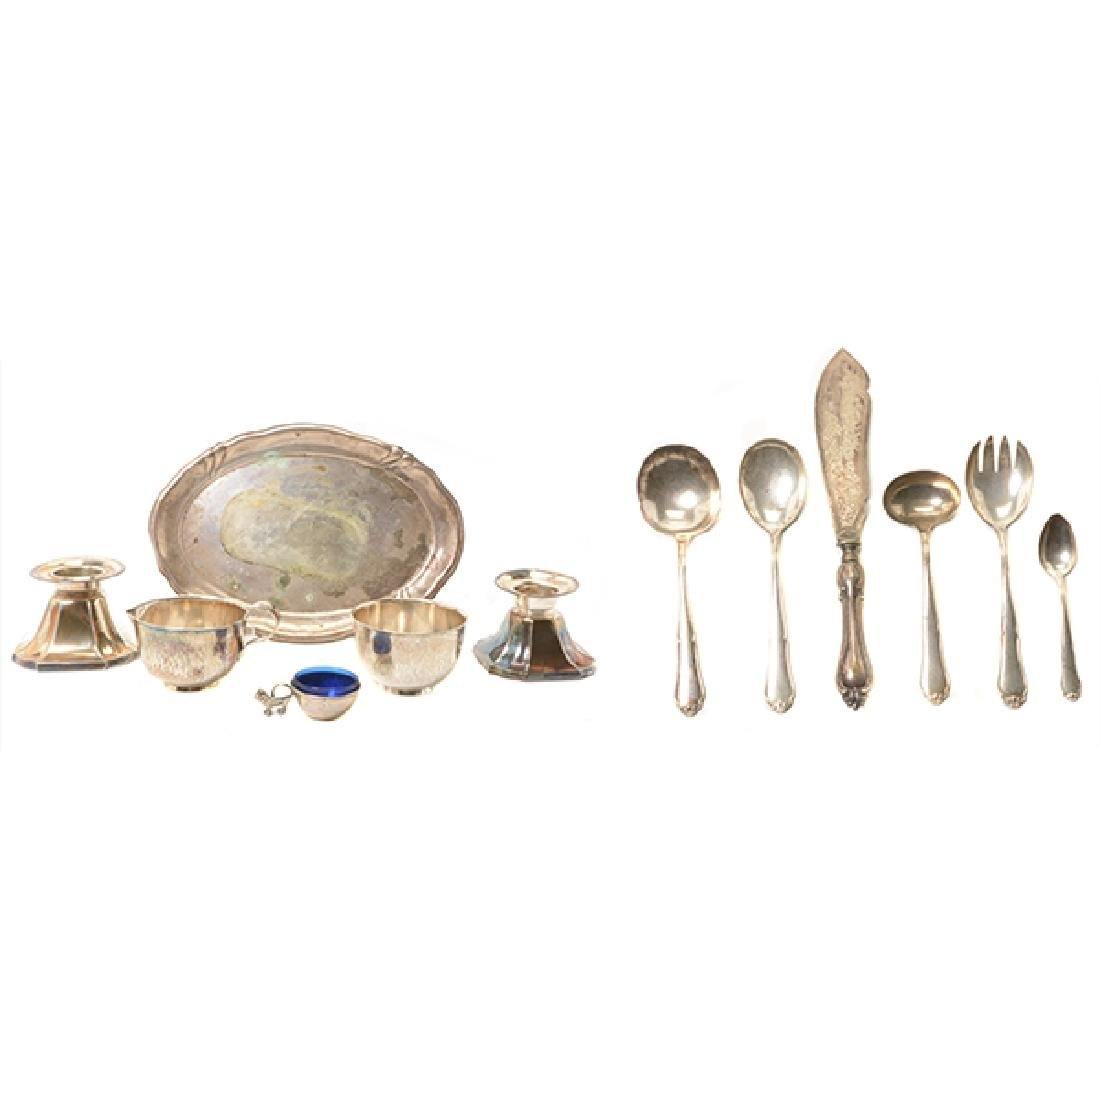 Collection of German Sterling Silver Flatware and Table